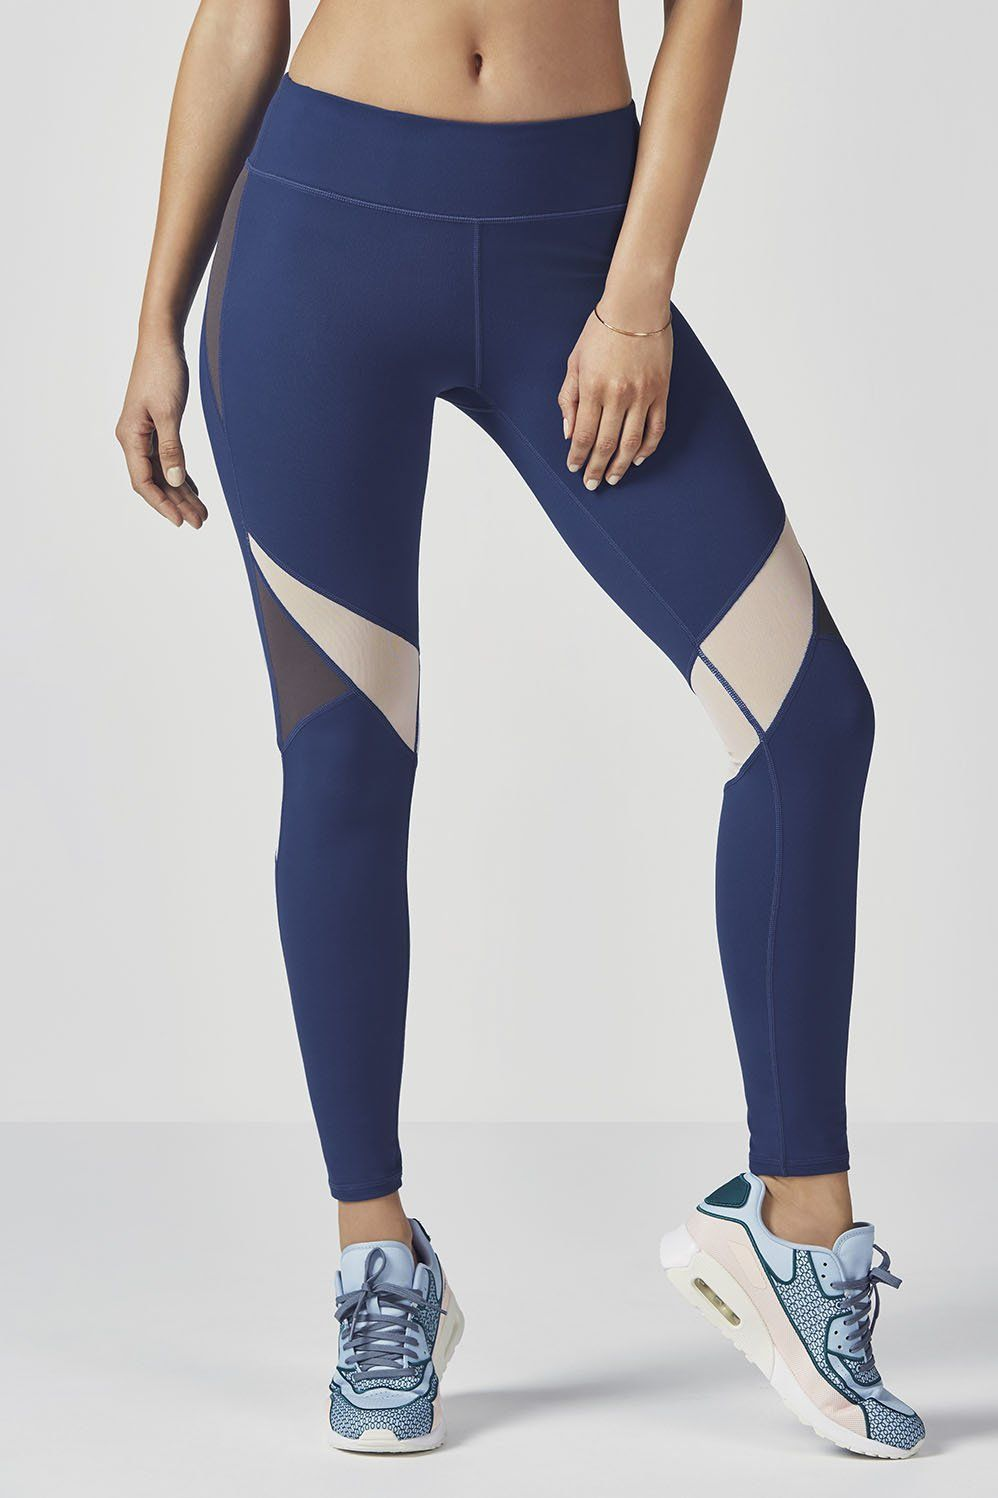 a38dea3867c9c3 Power up your performance in our color blocked compression leggings with  wraparound power mesh panels, UPF 50+ sun protection and sweat-wicking  technology.